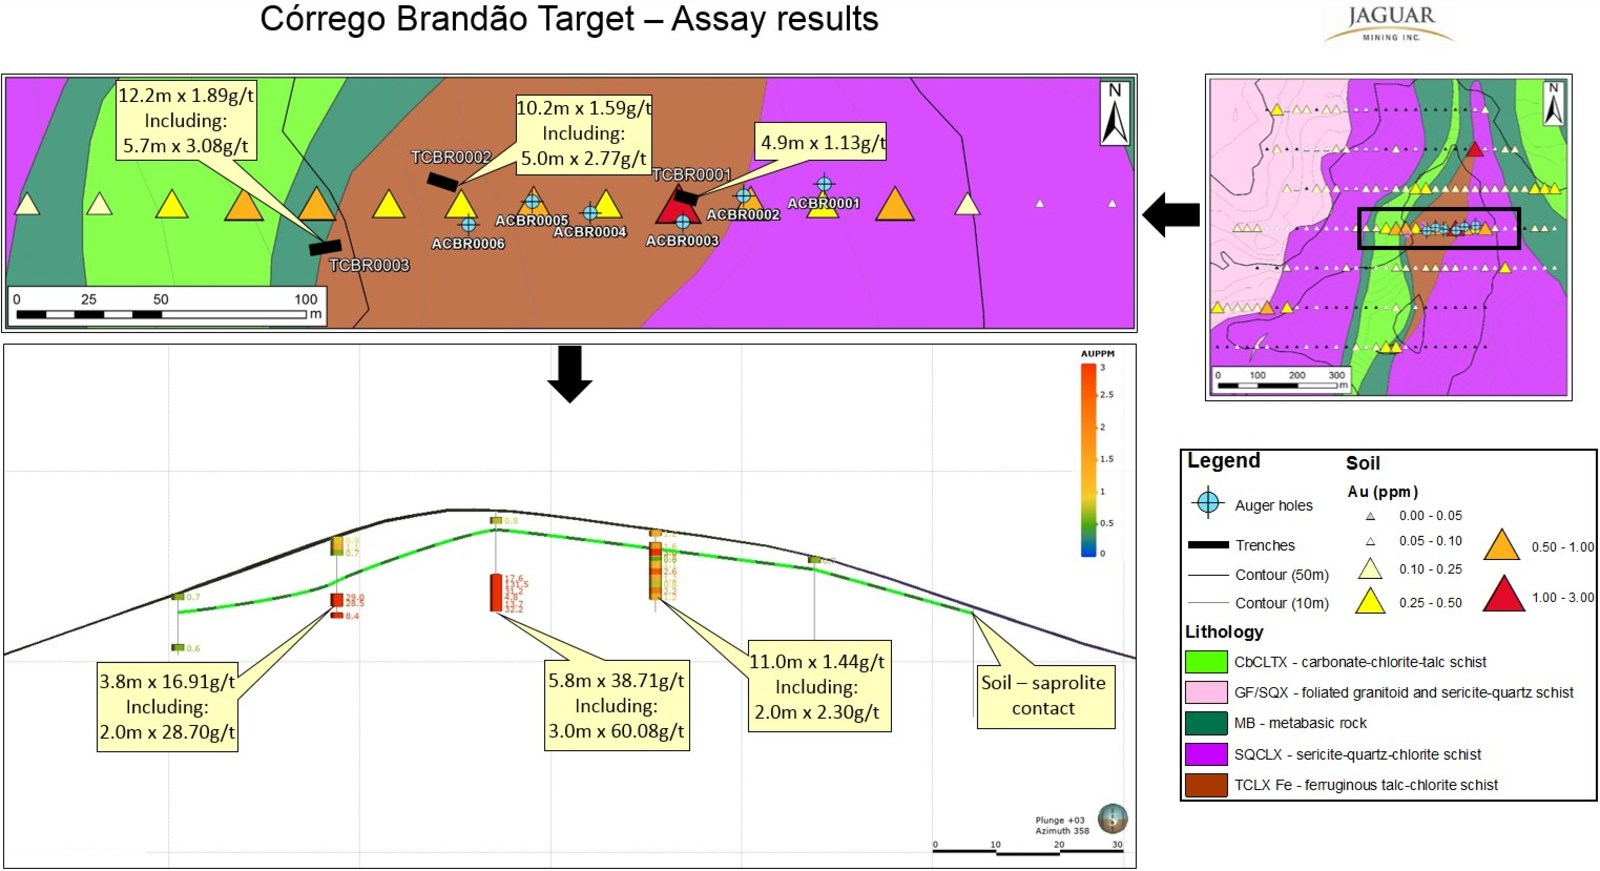 Figure 4. Córrego Brandão Target - Exploration Results.